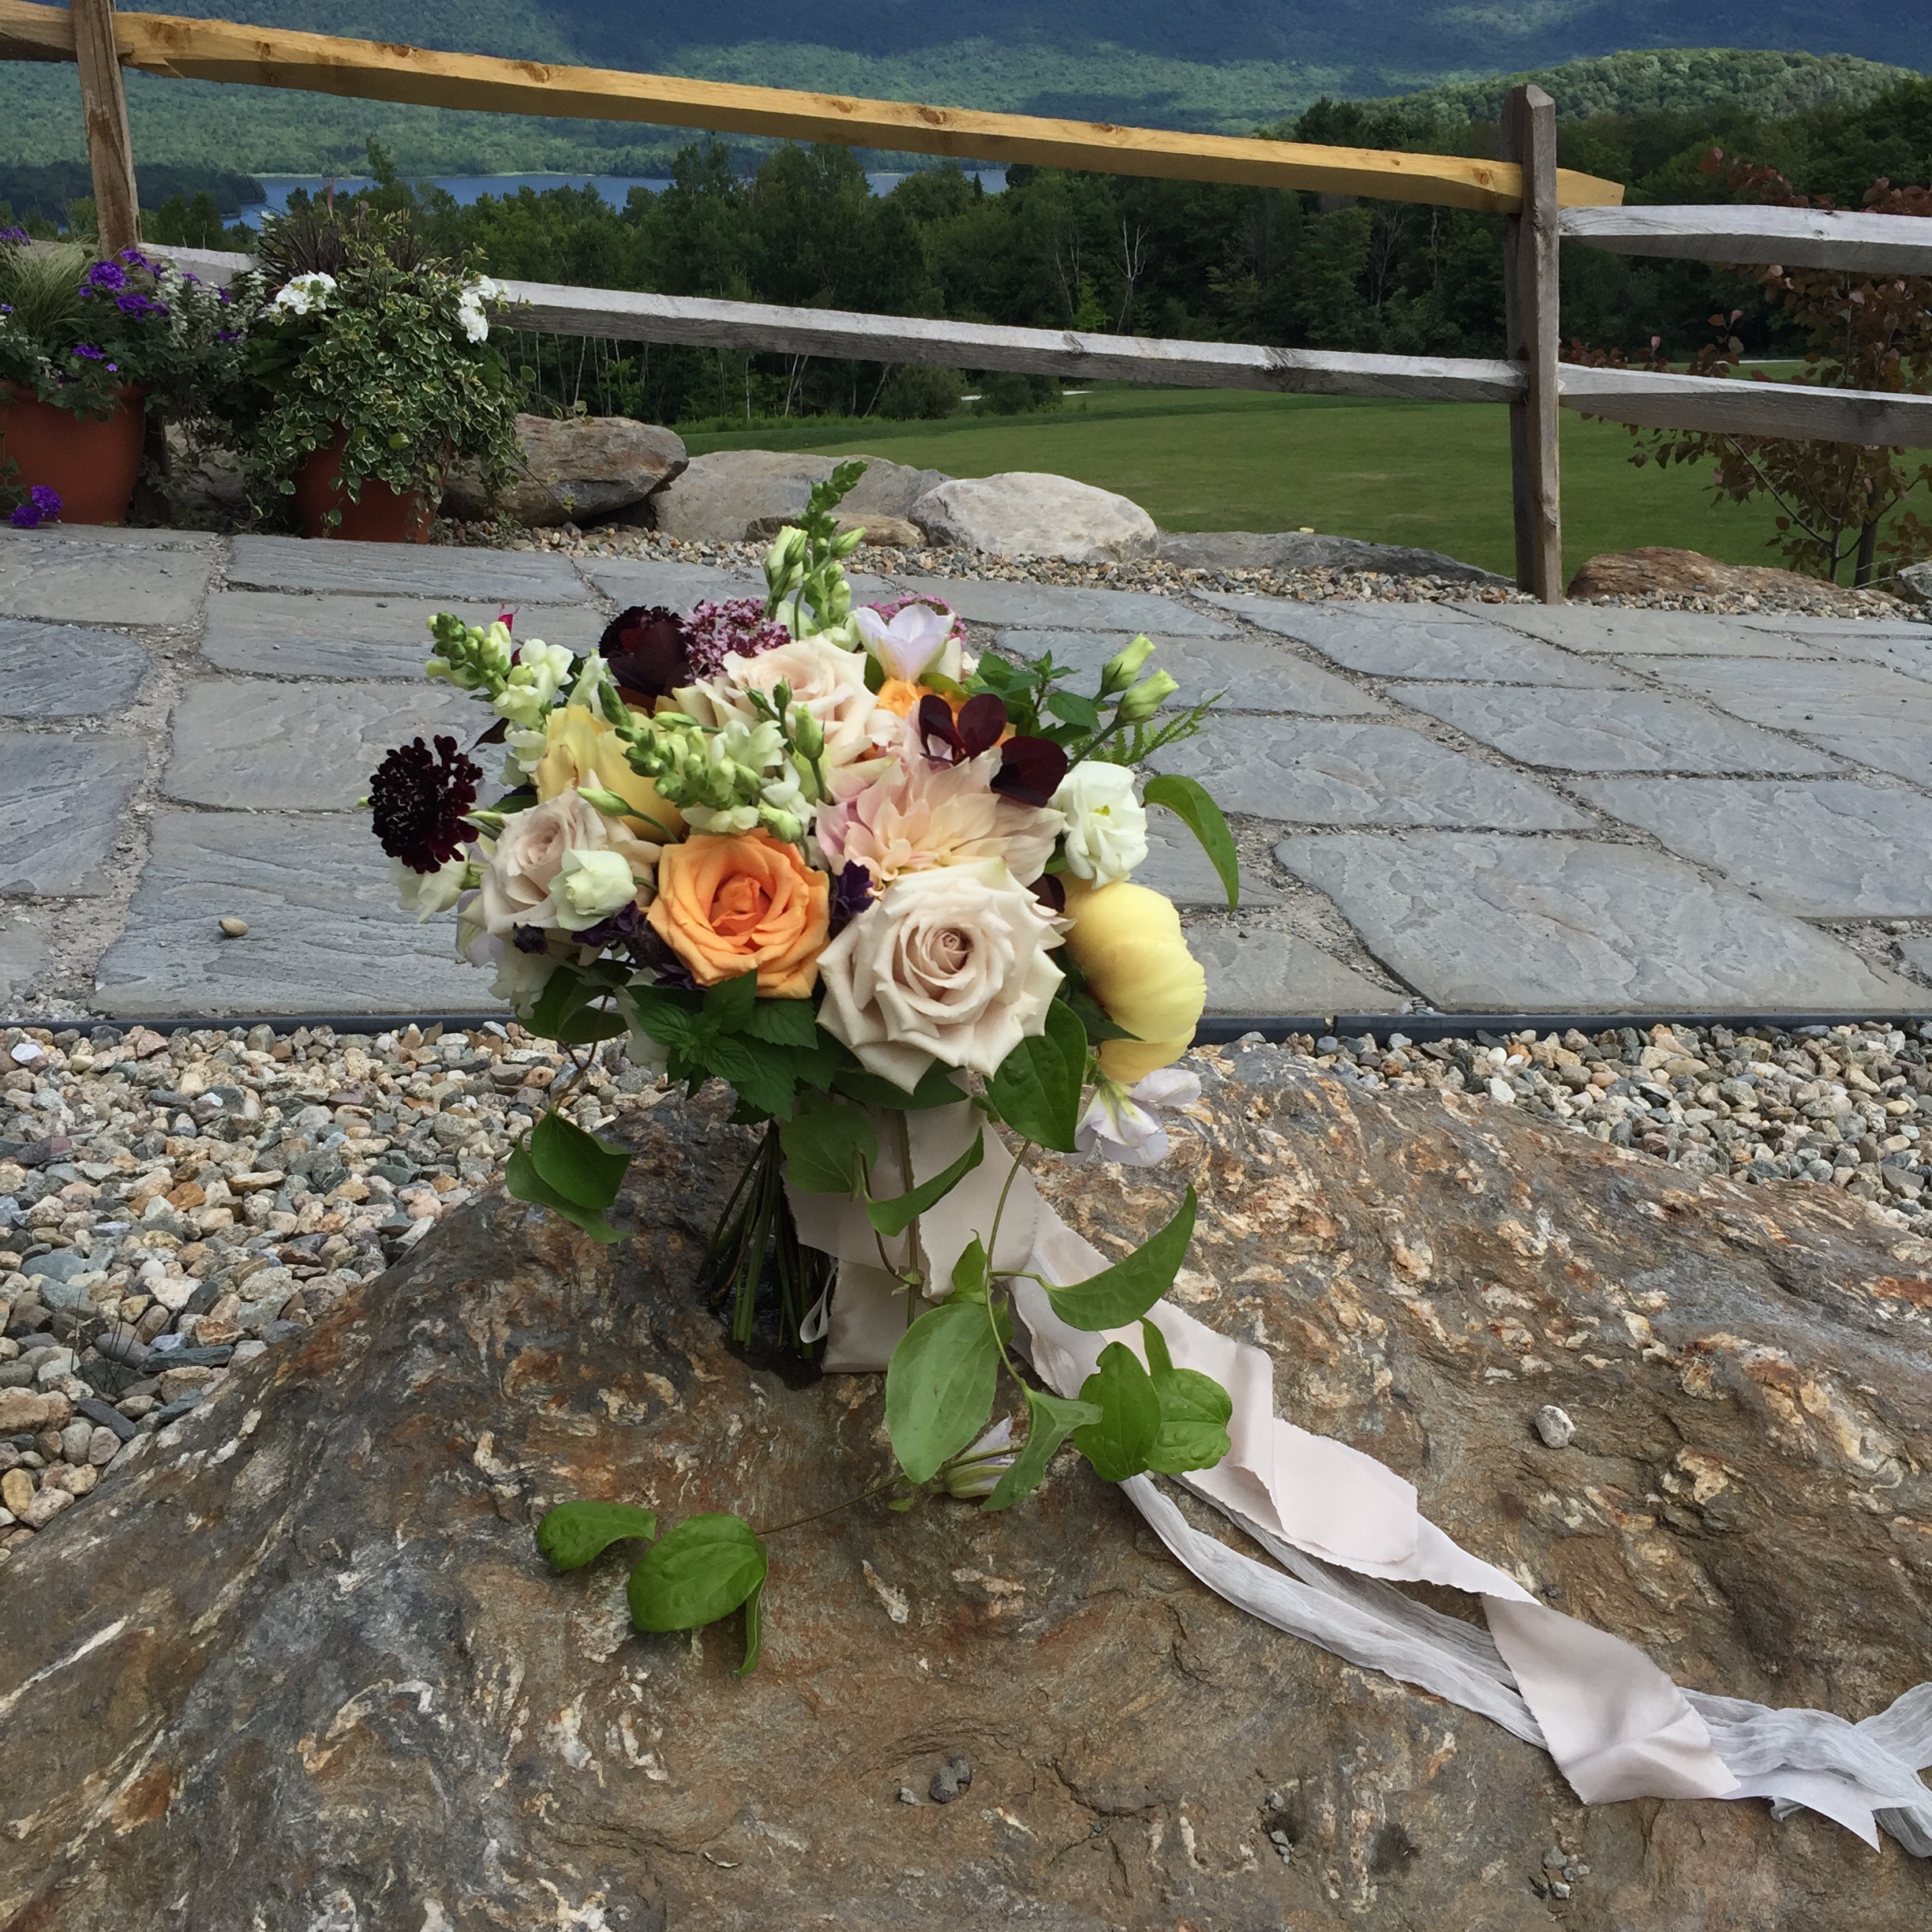 Bridal bouquet, Wedding flowers in Vermont, Floral Artistry, Vermont wedding flowers by Alison